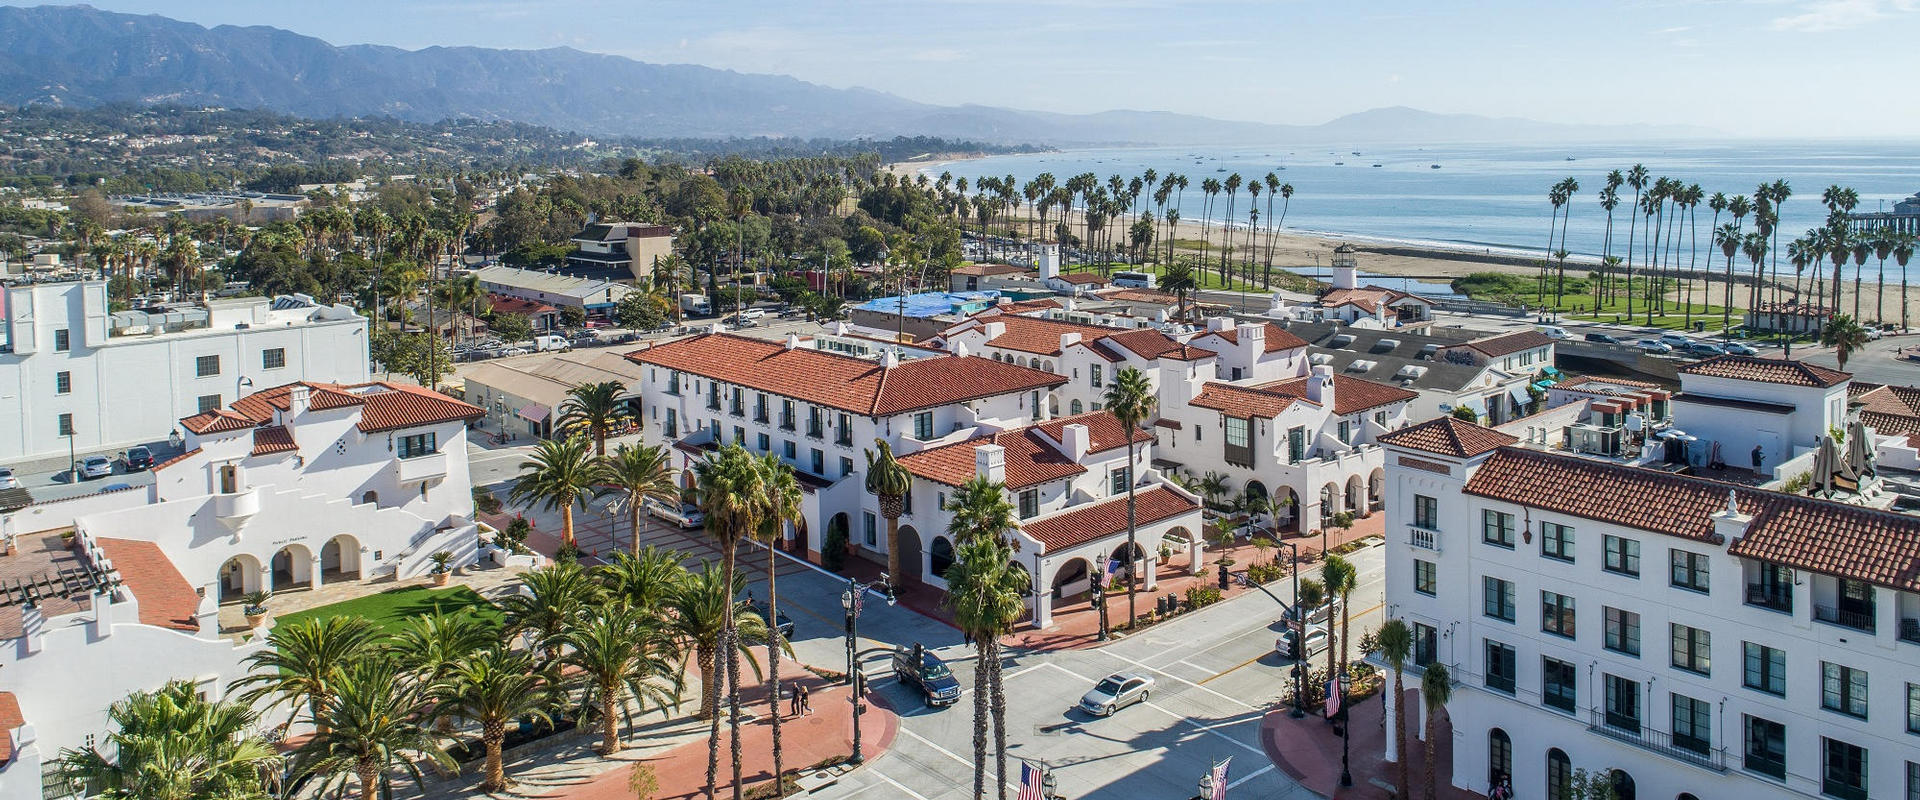 Hotel Californian with Santa Barbara beach views